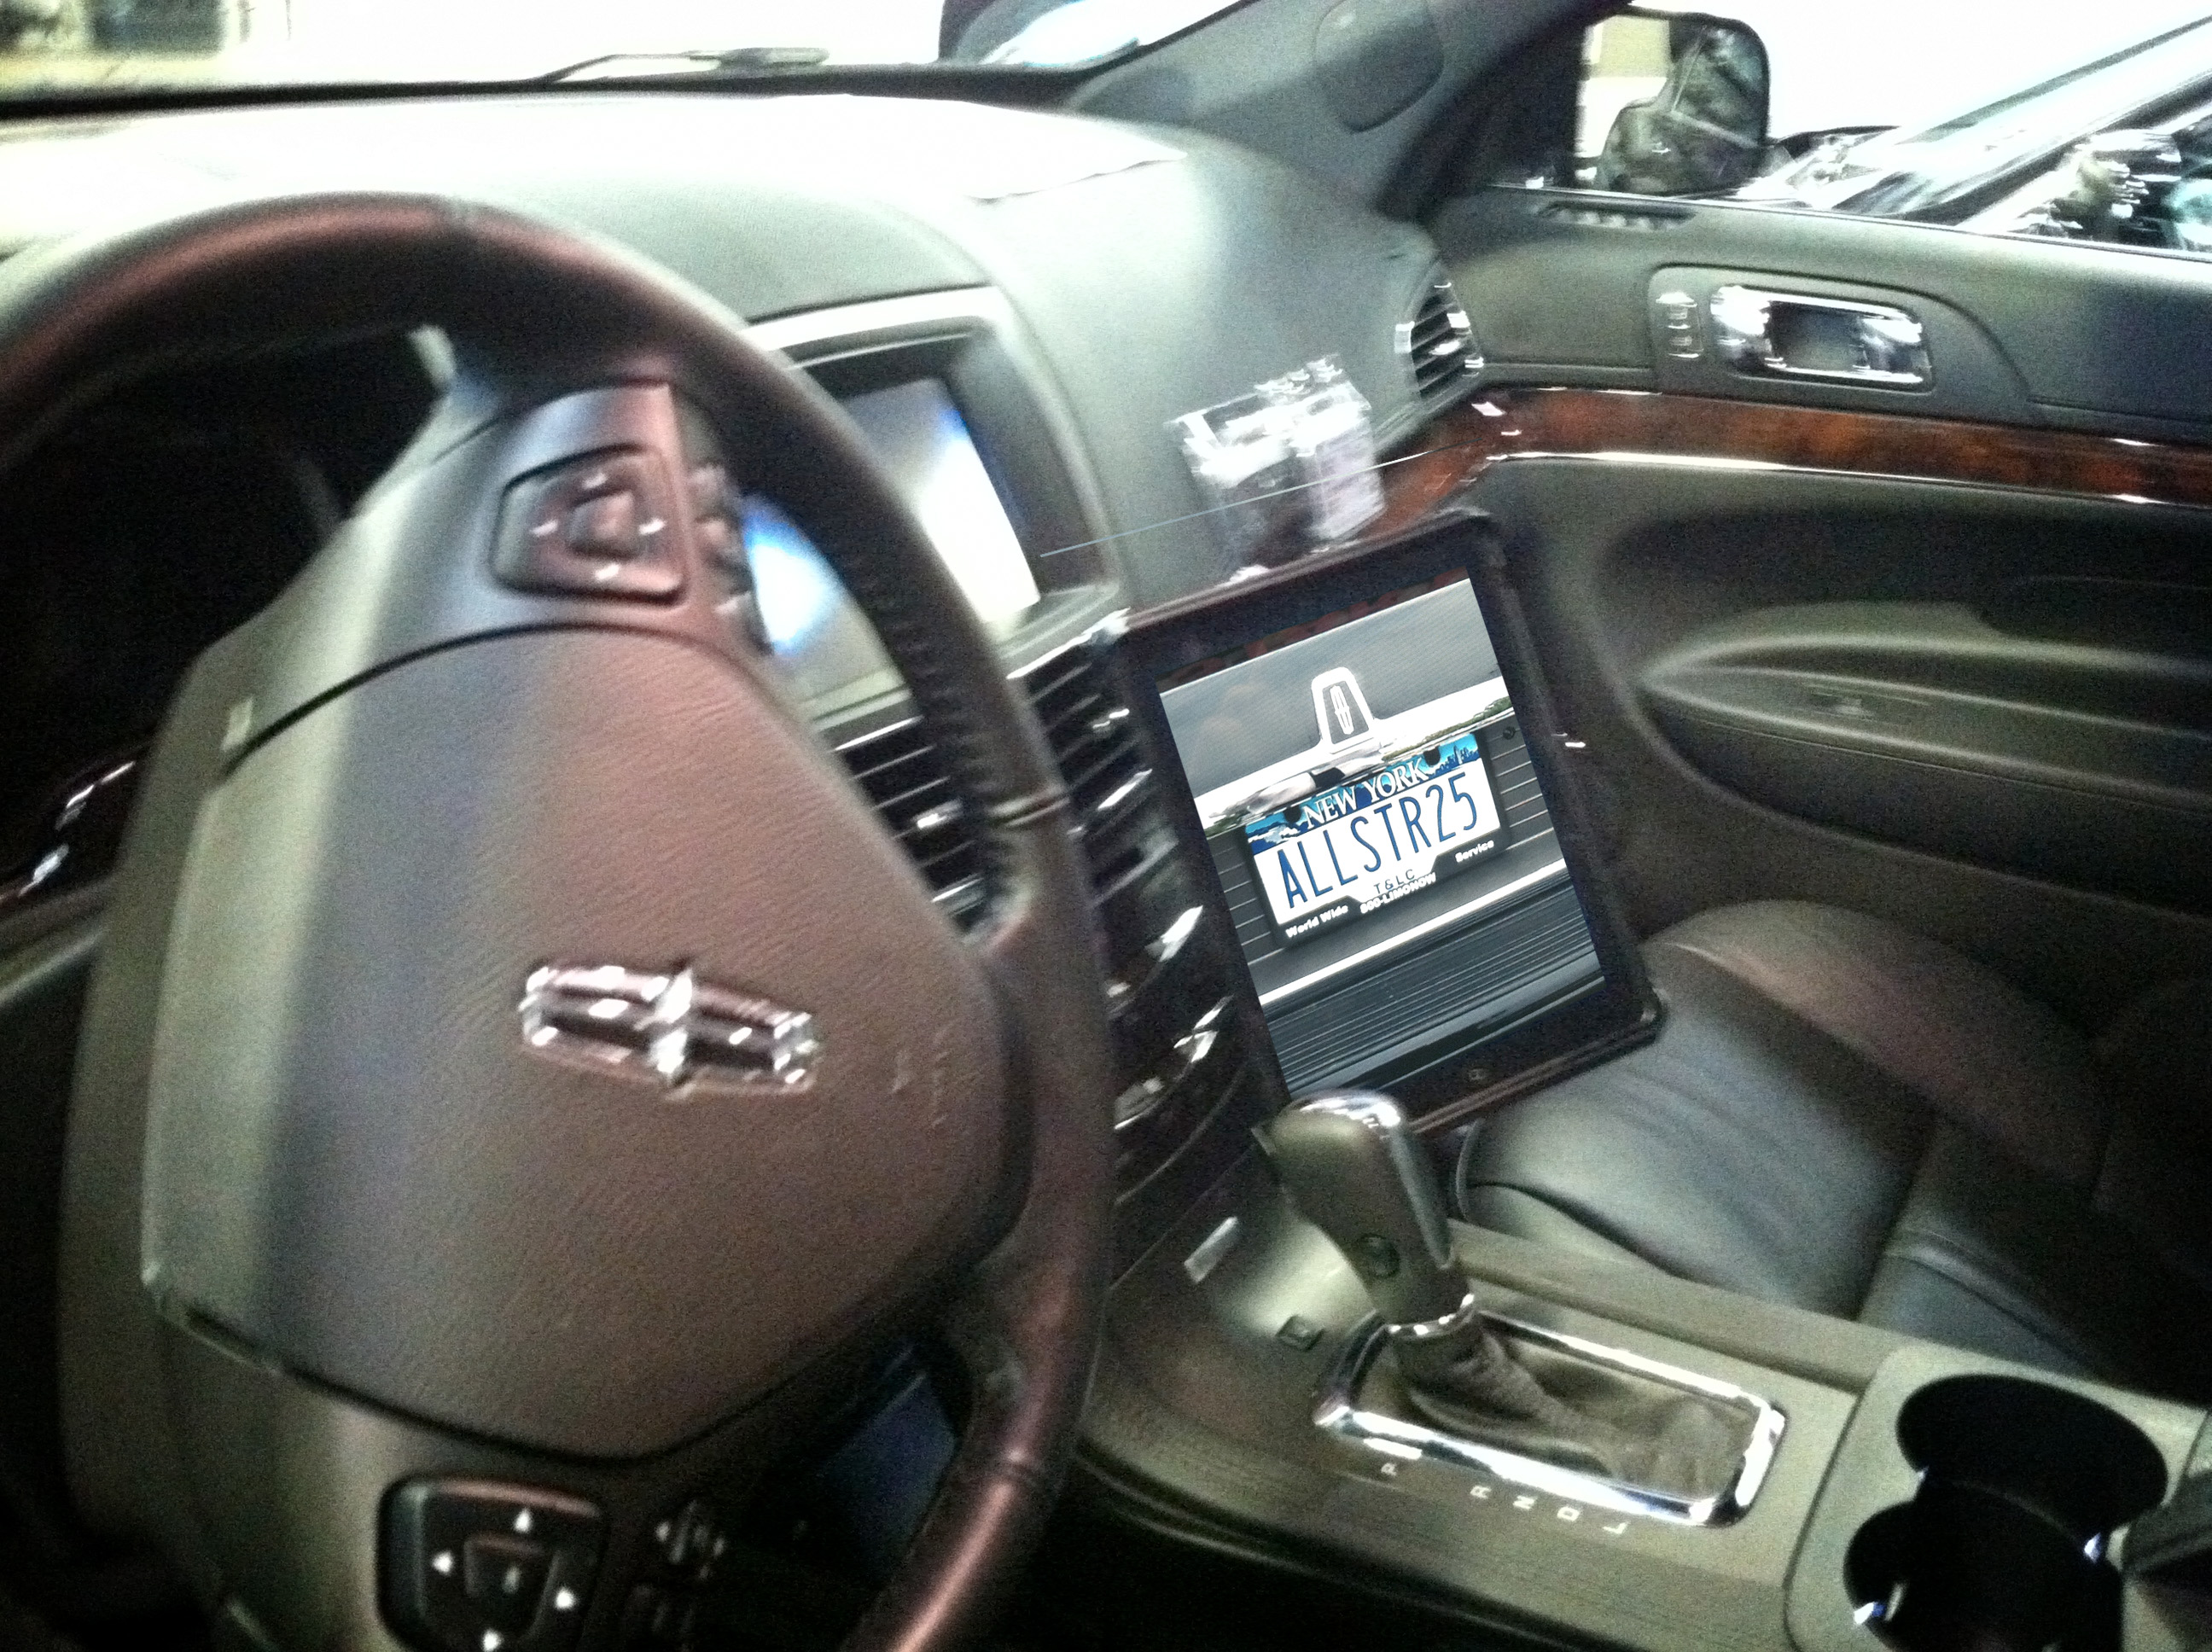 2013 mkt lincoln town car with all star limos new ipads